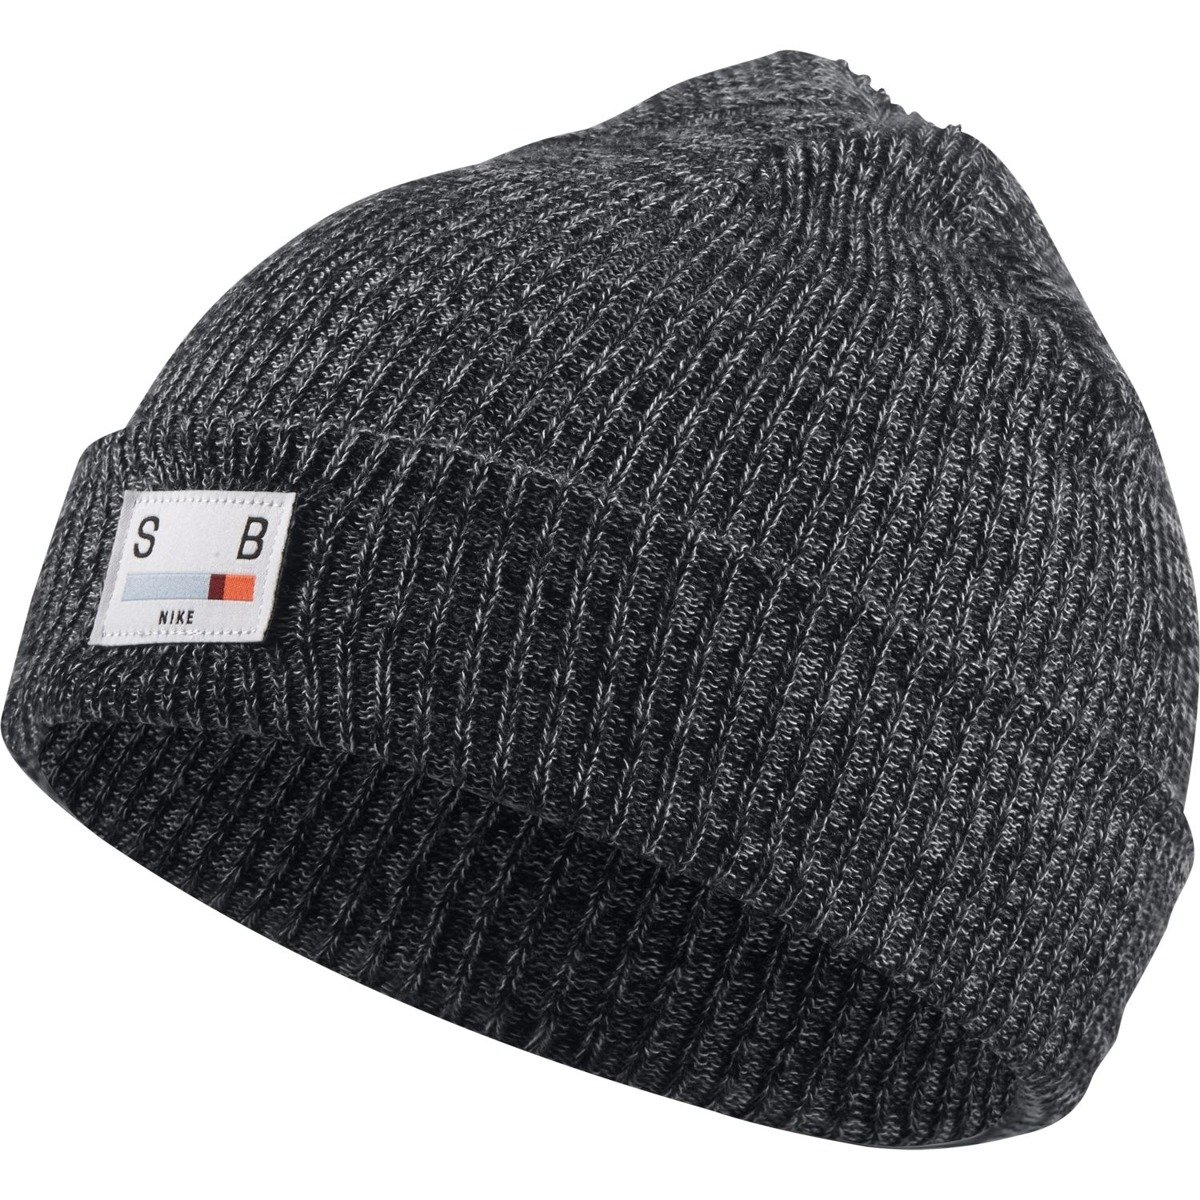 8866ae007 nike sb surplus beanie black/dark grey/wolf grey